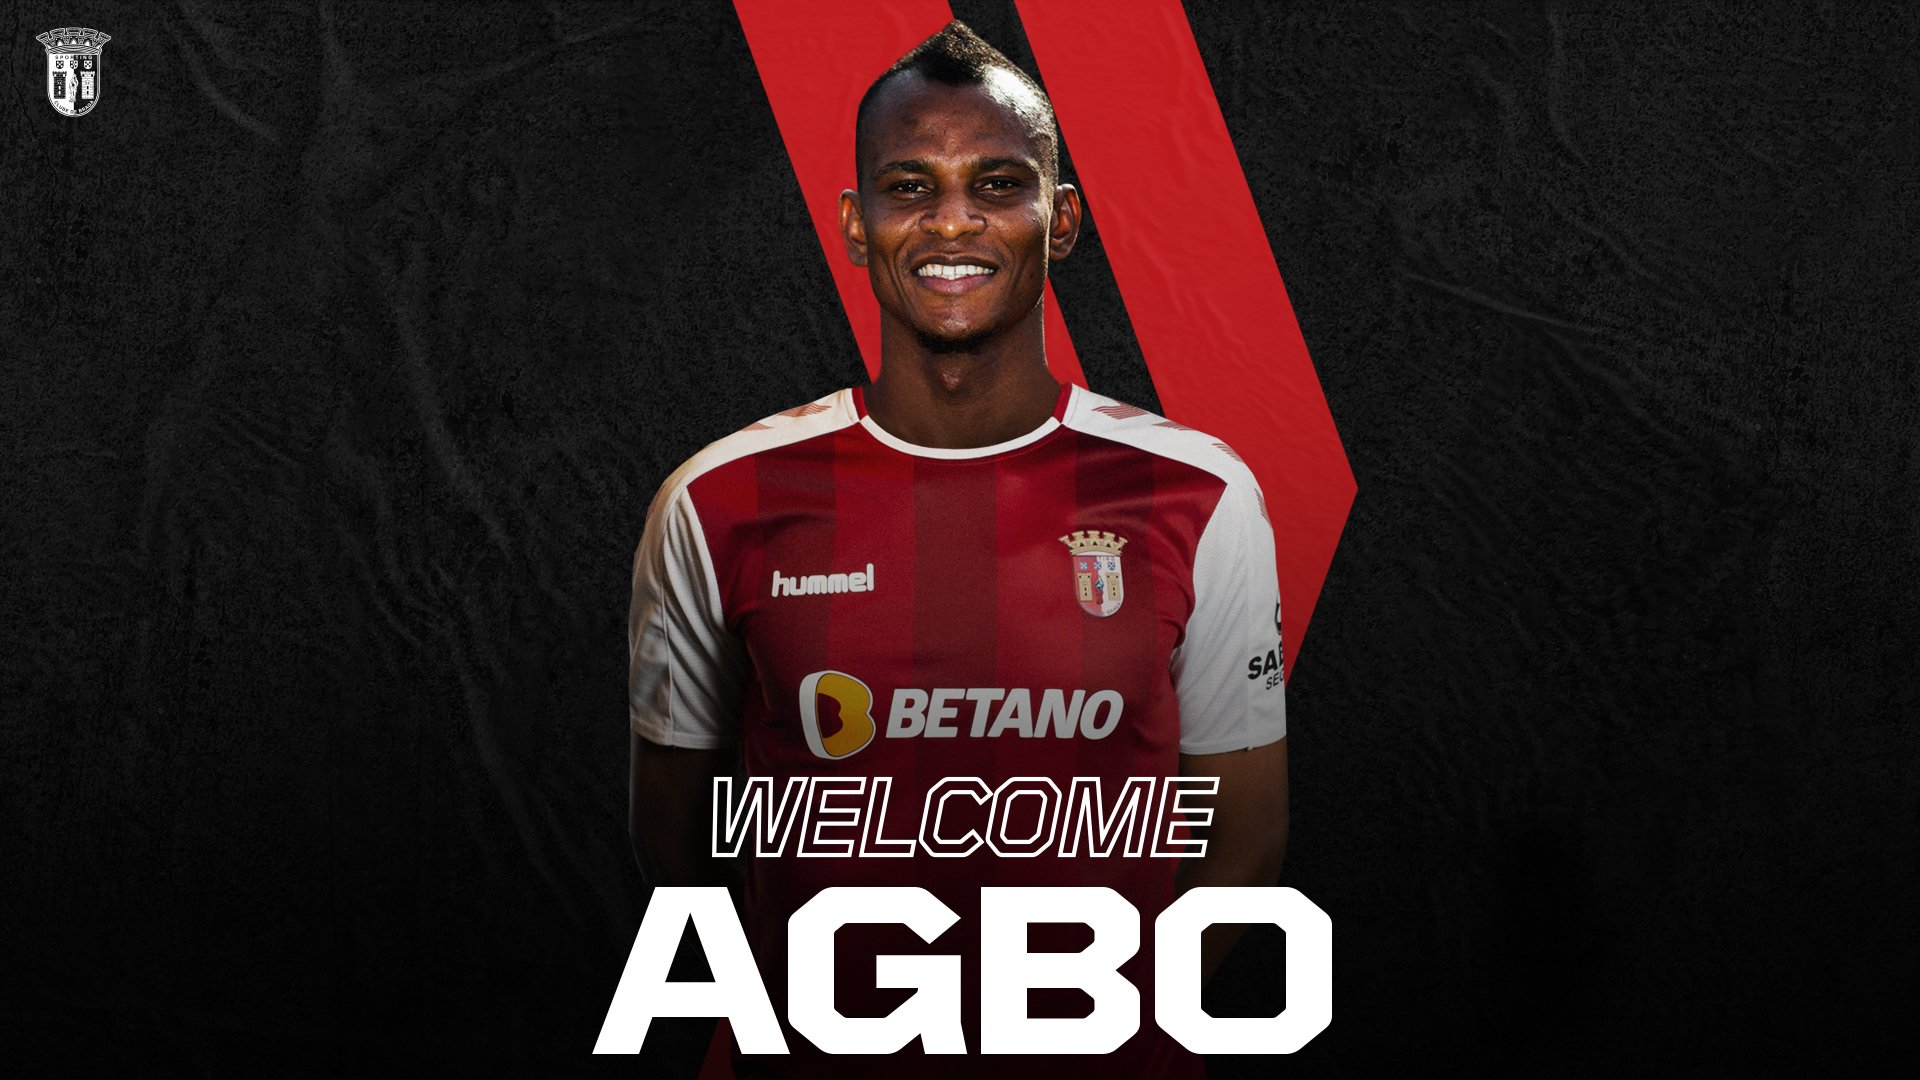 Agbo, Igbonu, Okaka Lead Nigeria's Summer Transfer Deadline Deals